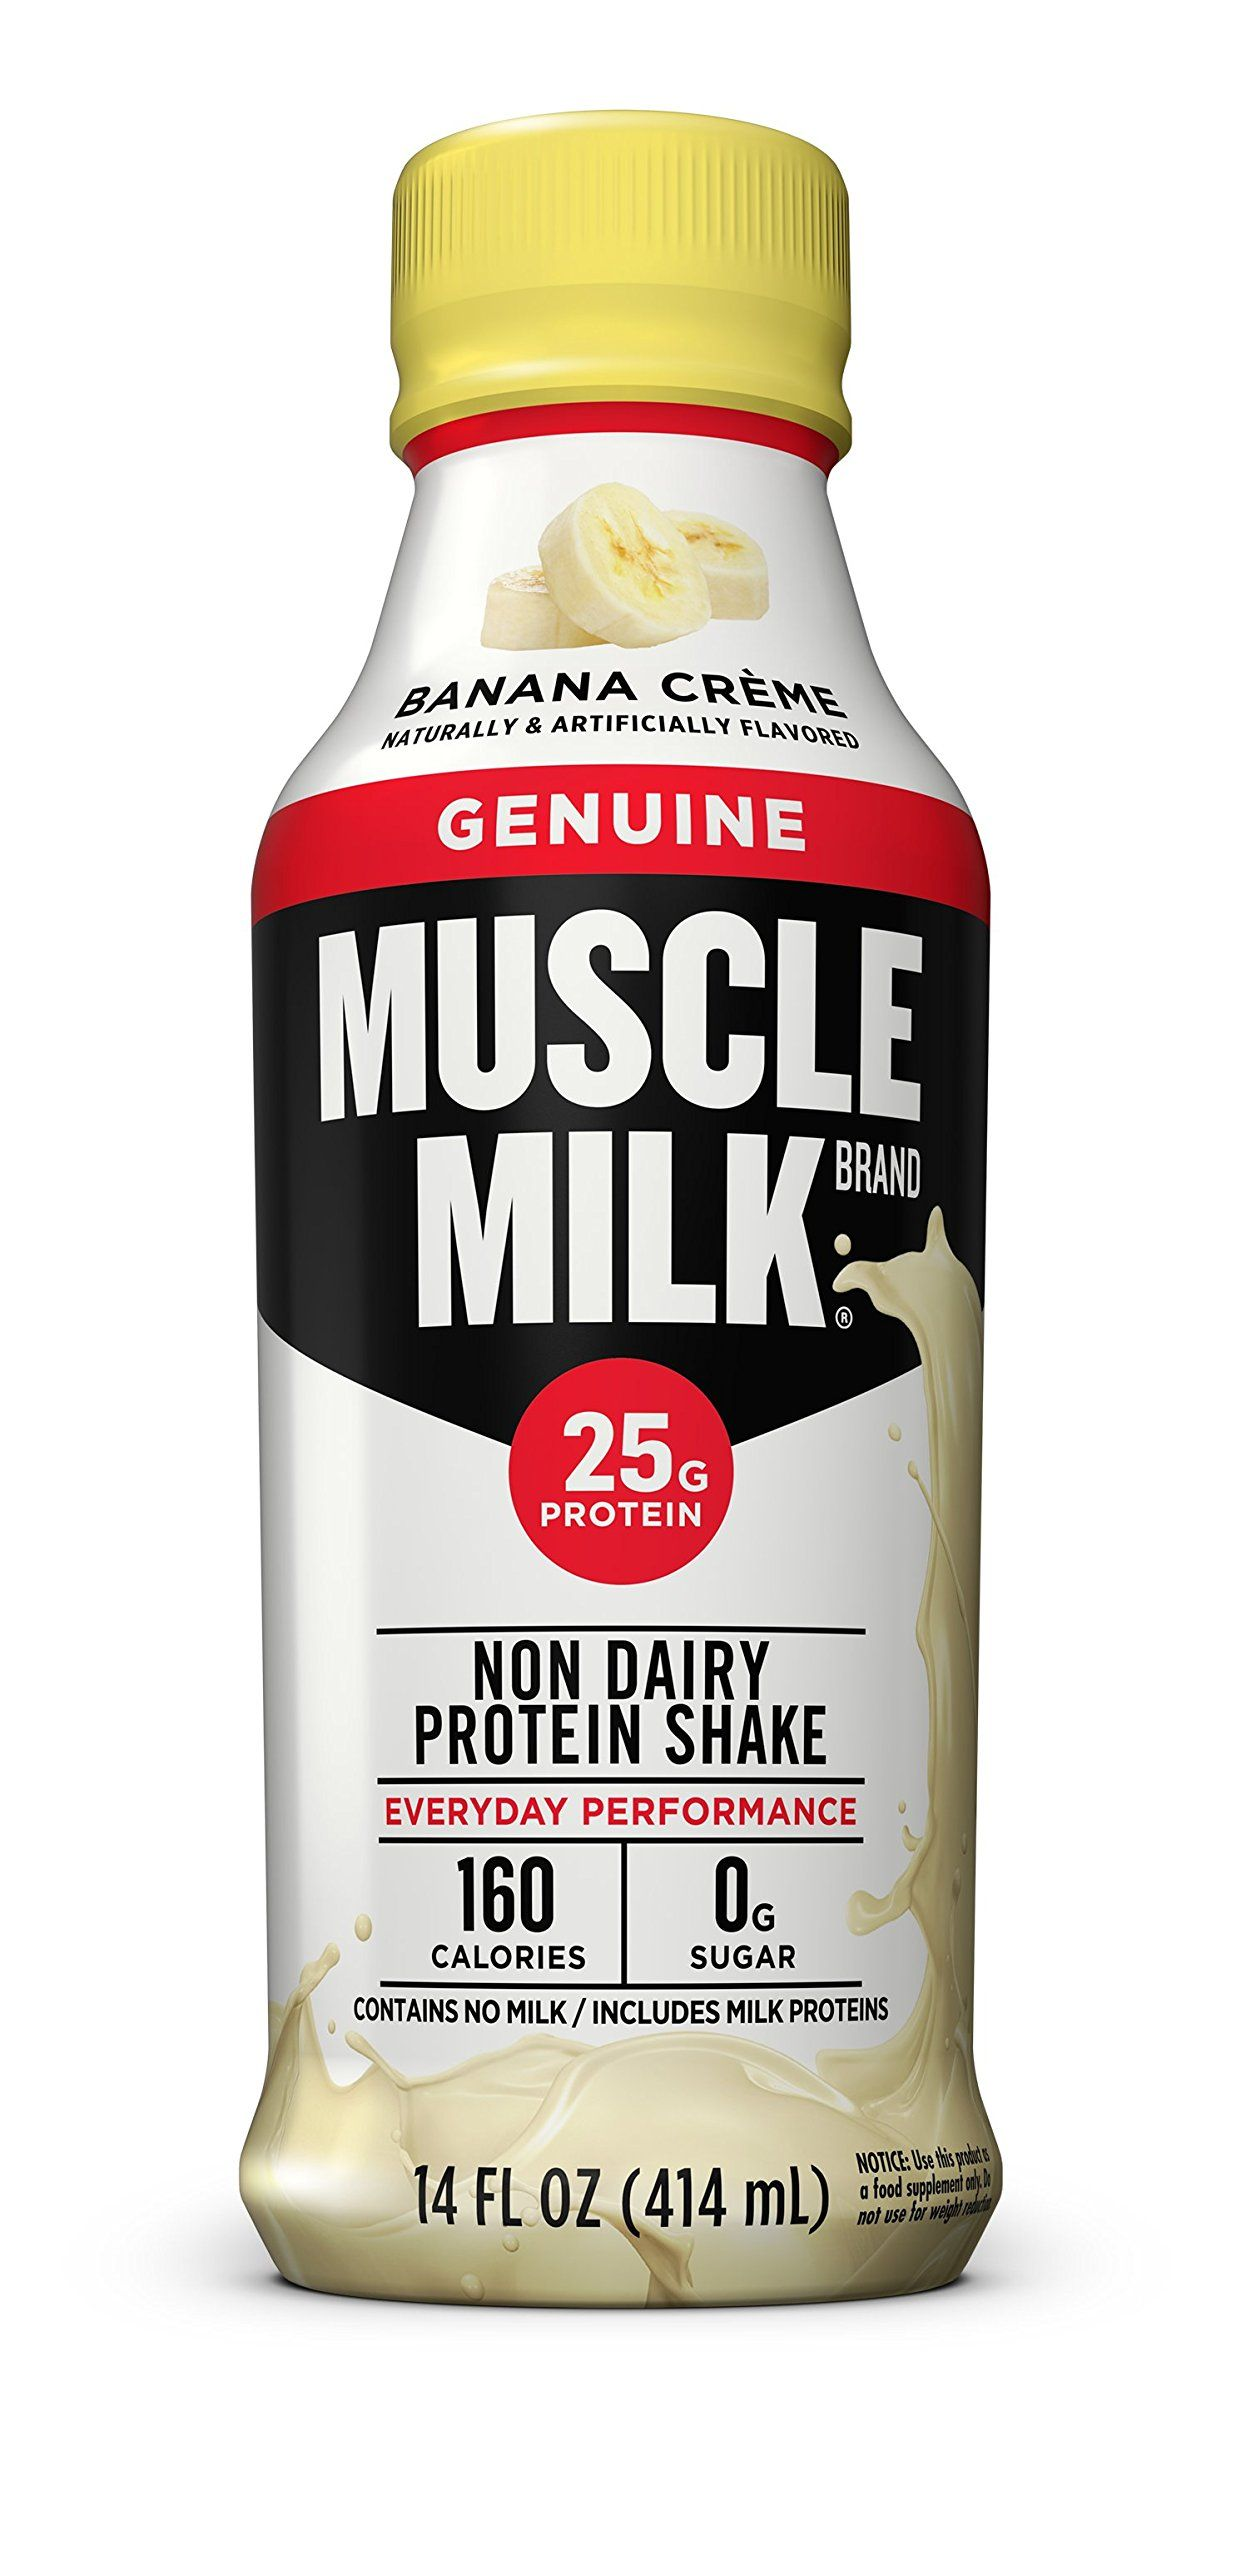 Muscle Milk Genuine Protein Shake Banana Crème 25g Protein 14 FL OZ 12 count ** Details can be ...